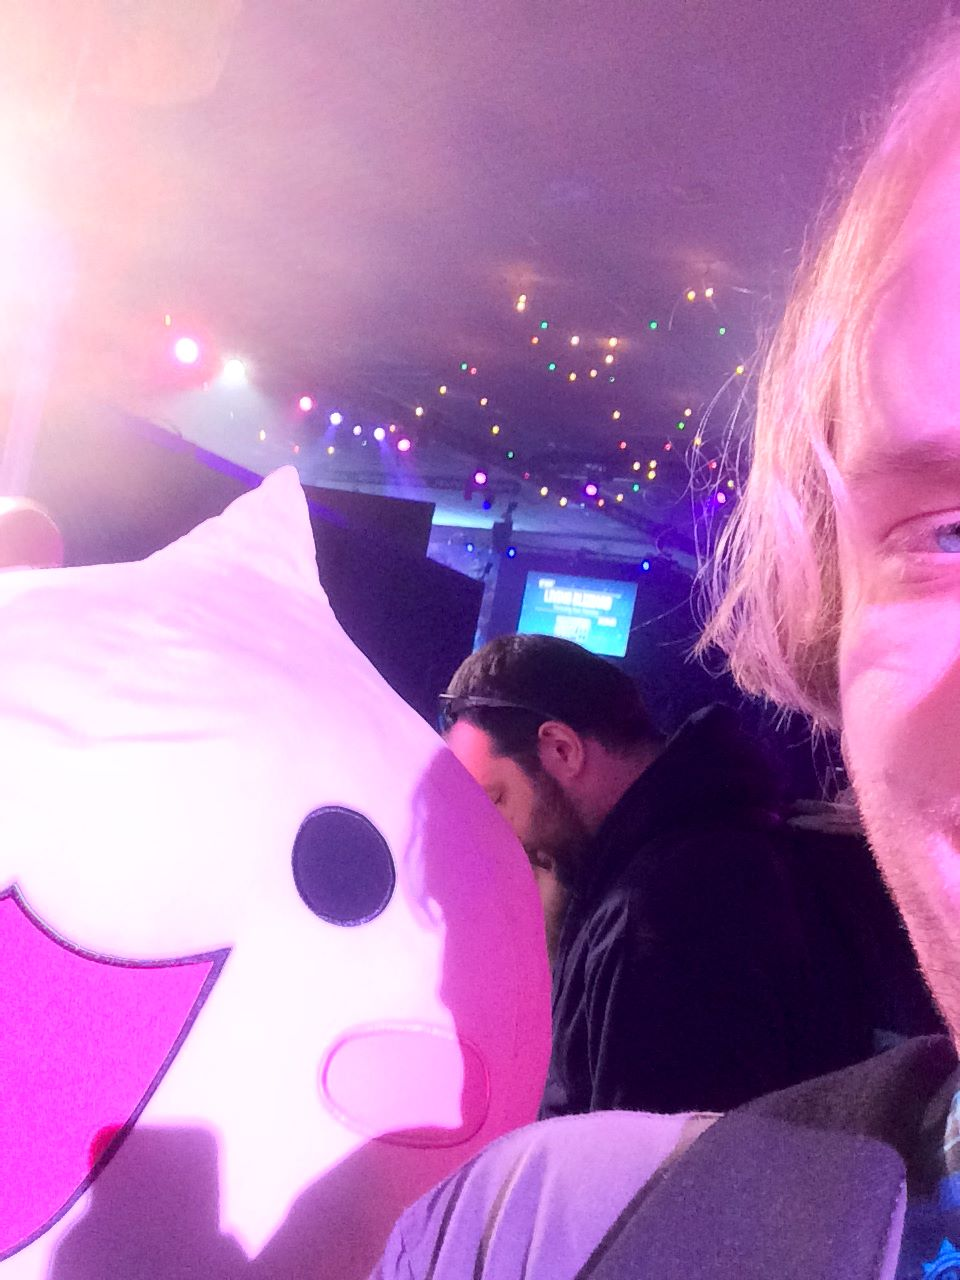 Shawn Hall & the Pachimari oversized plush at BlizzCon 2017.